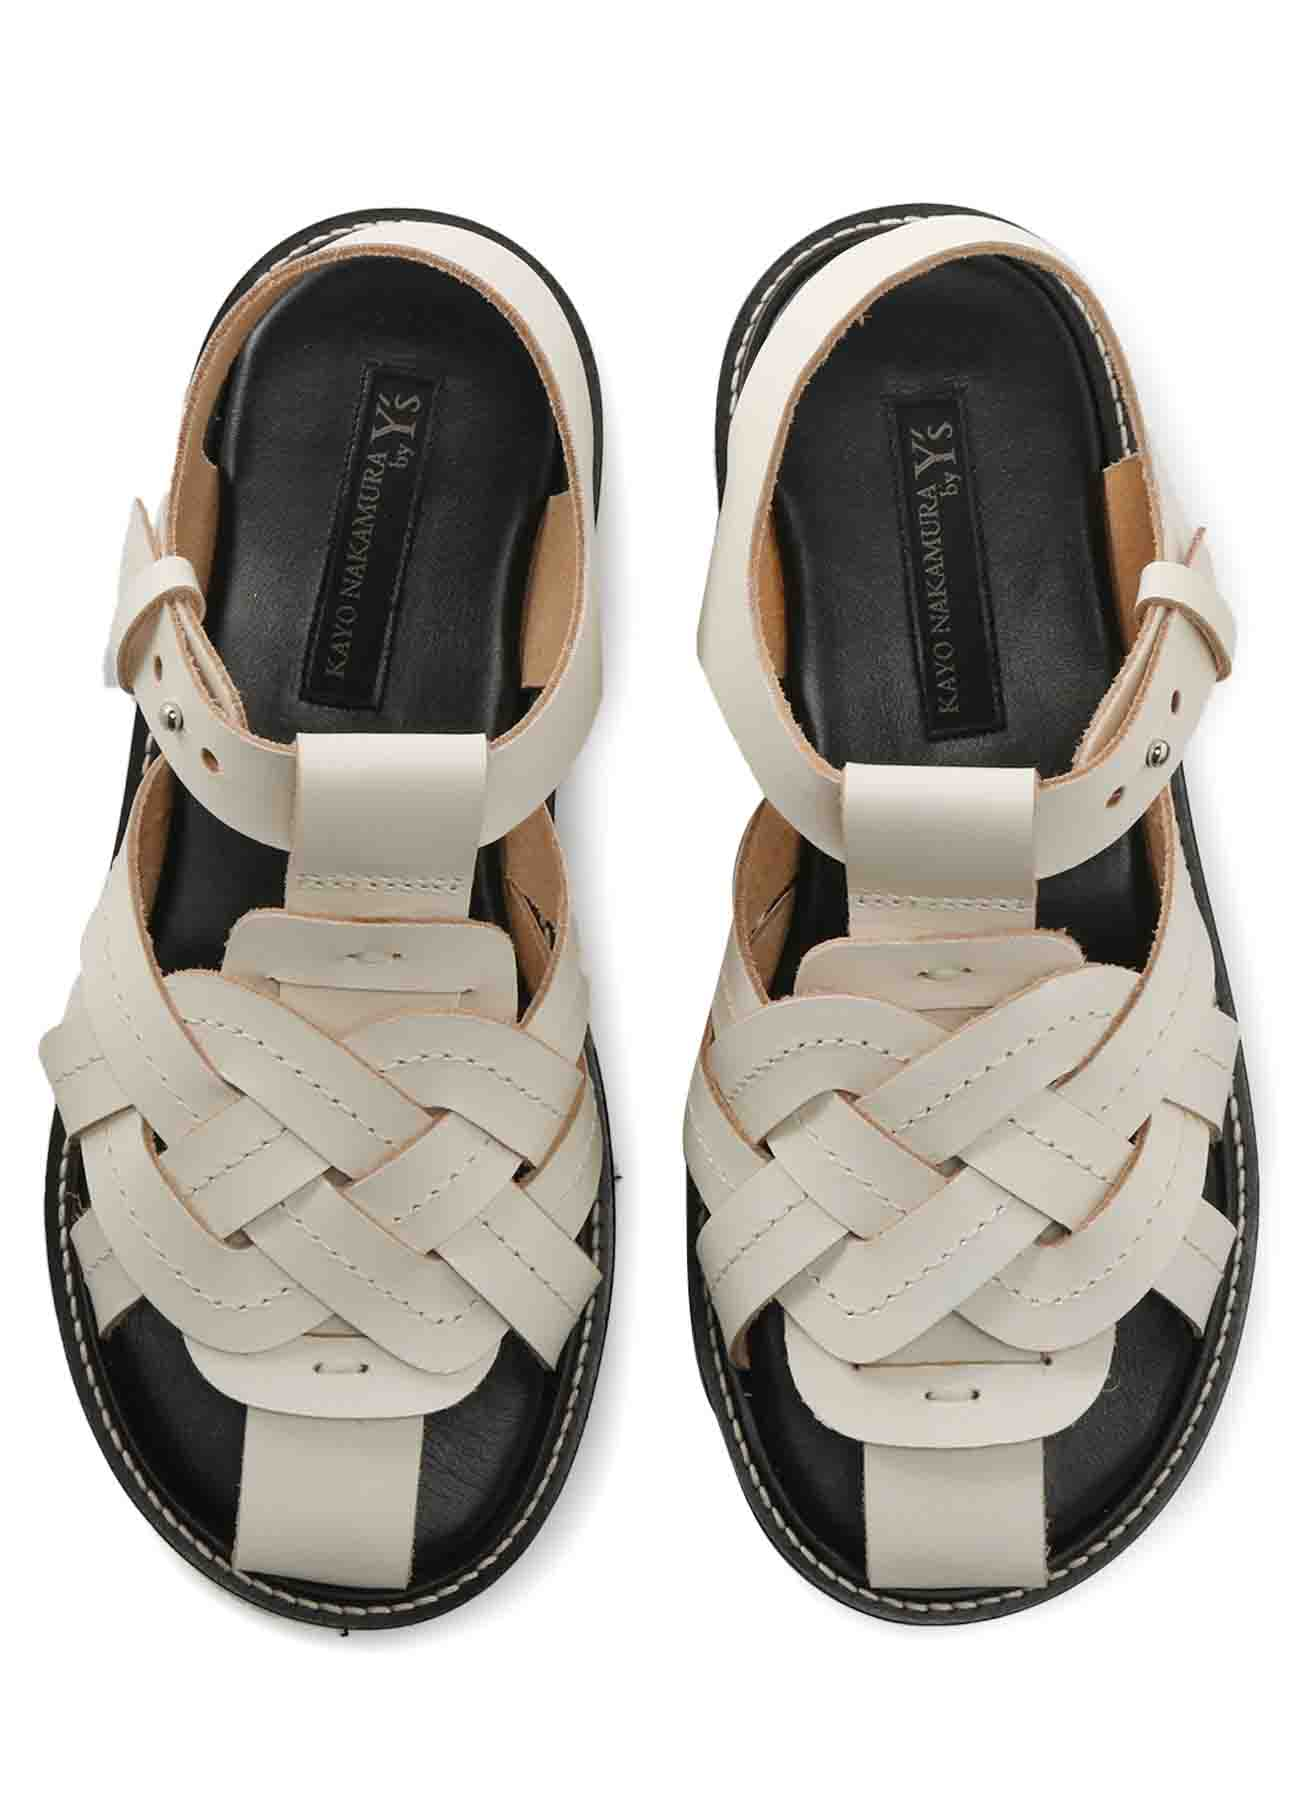 THICK NUME LEATHER A KNITTED SANDALS